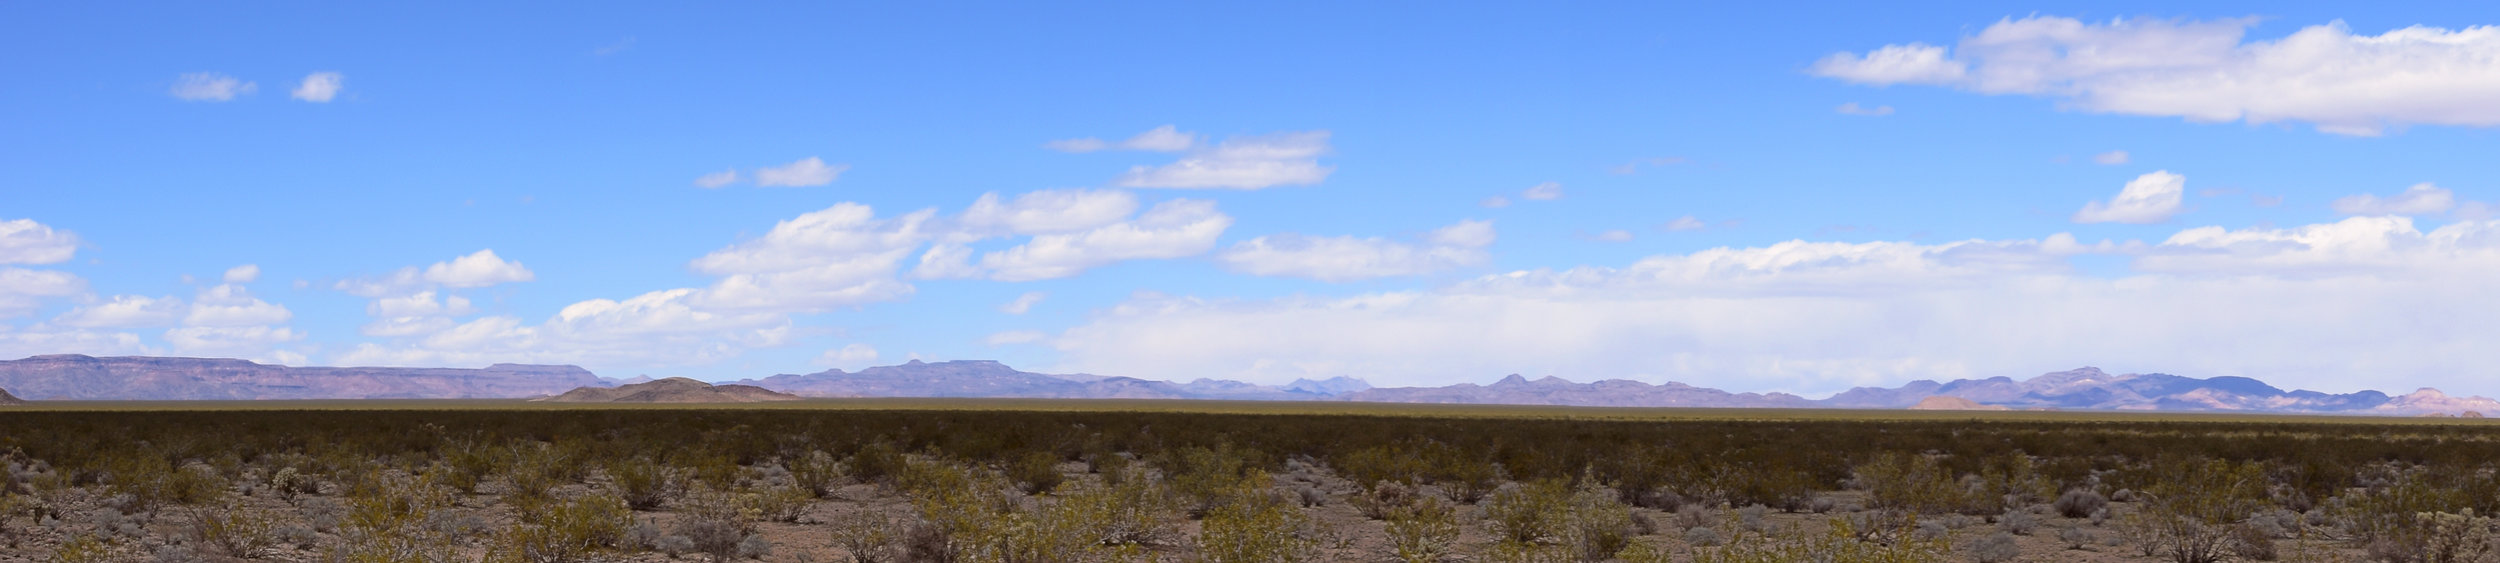 Fenner Valley, Mojave National Preserve - Photo by Tim Giller